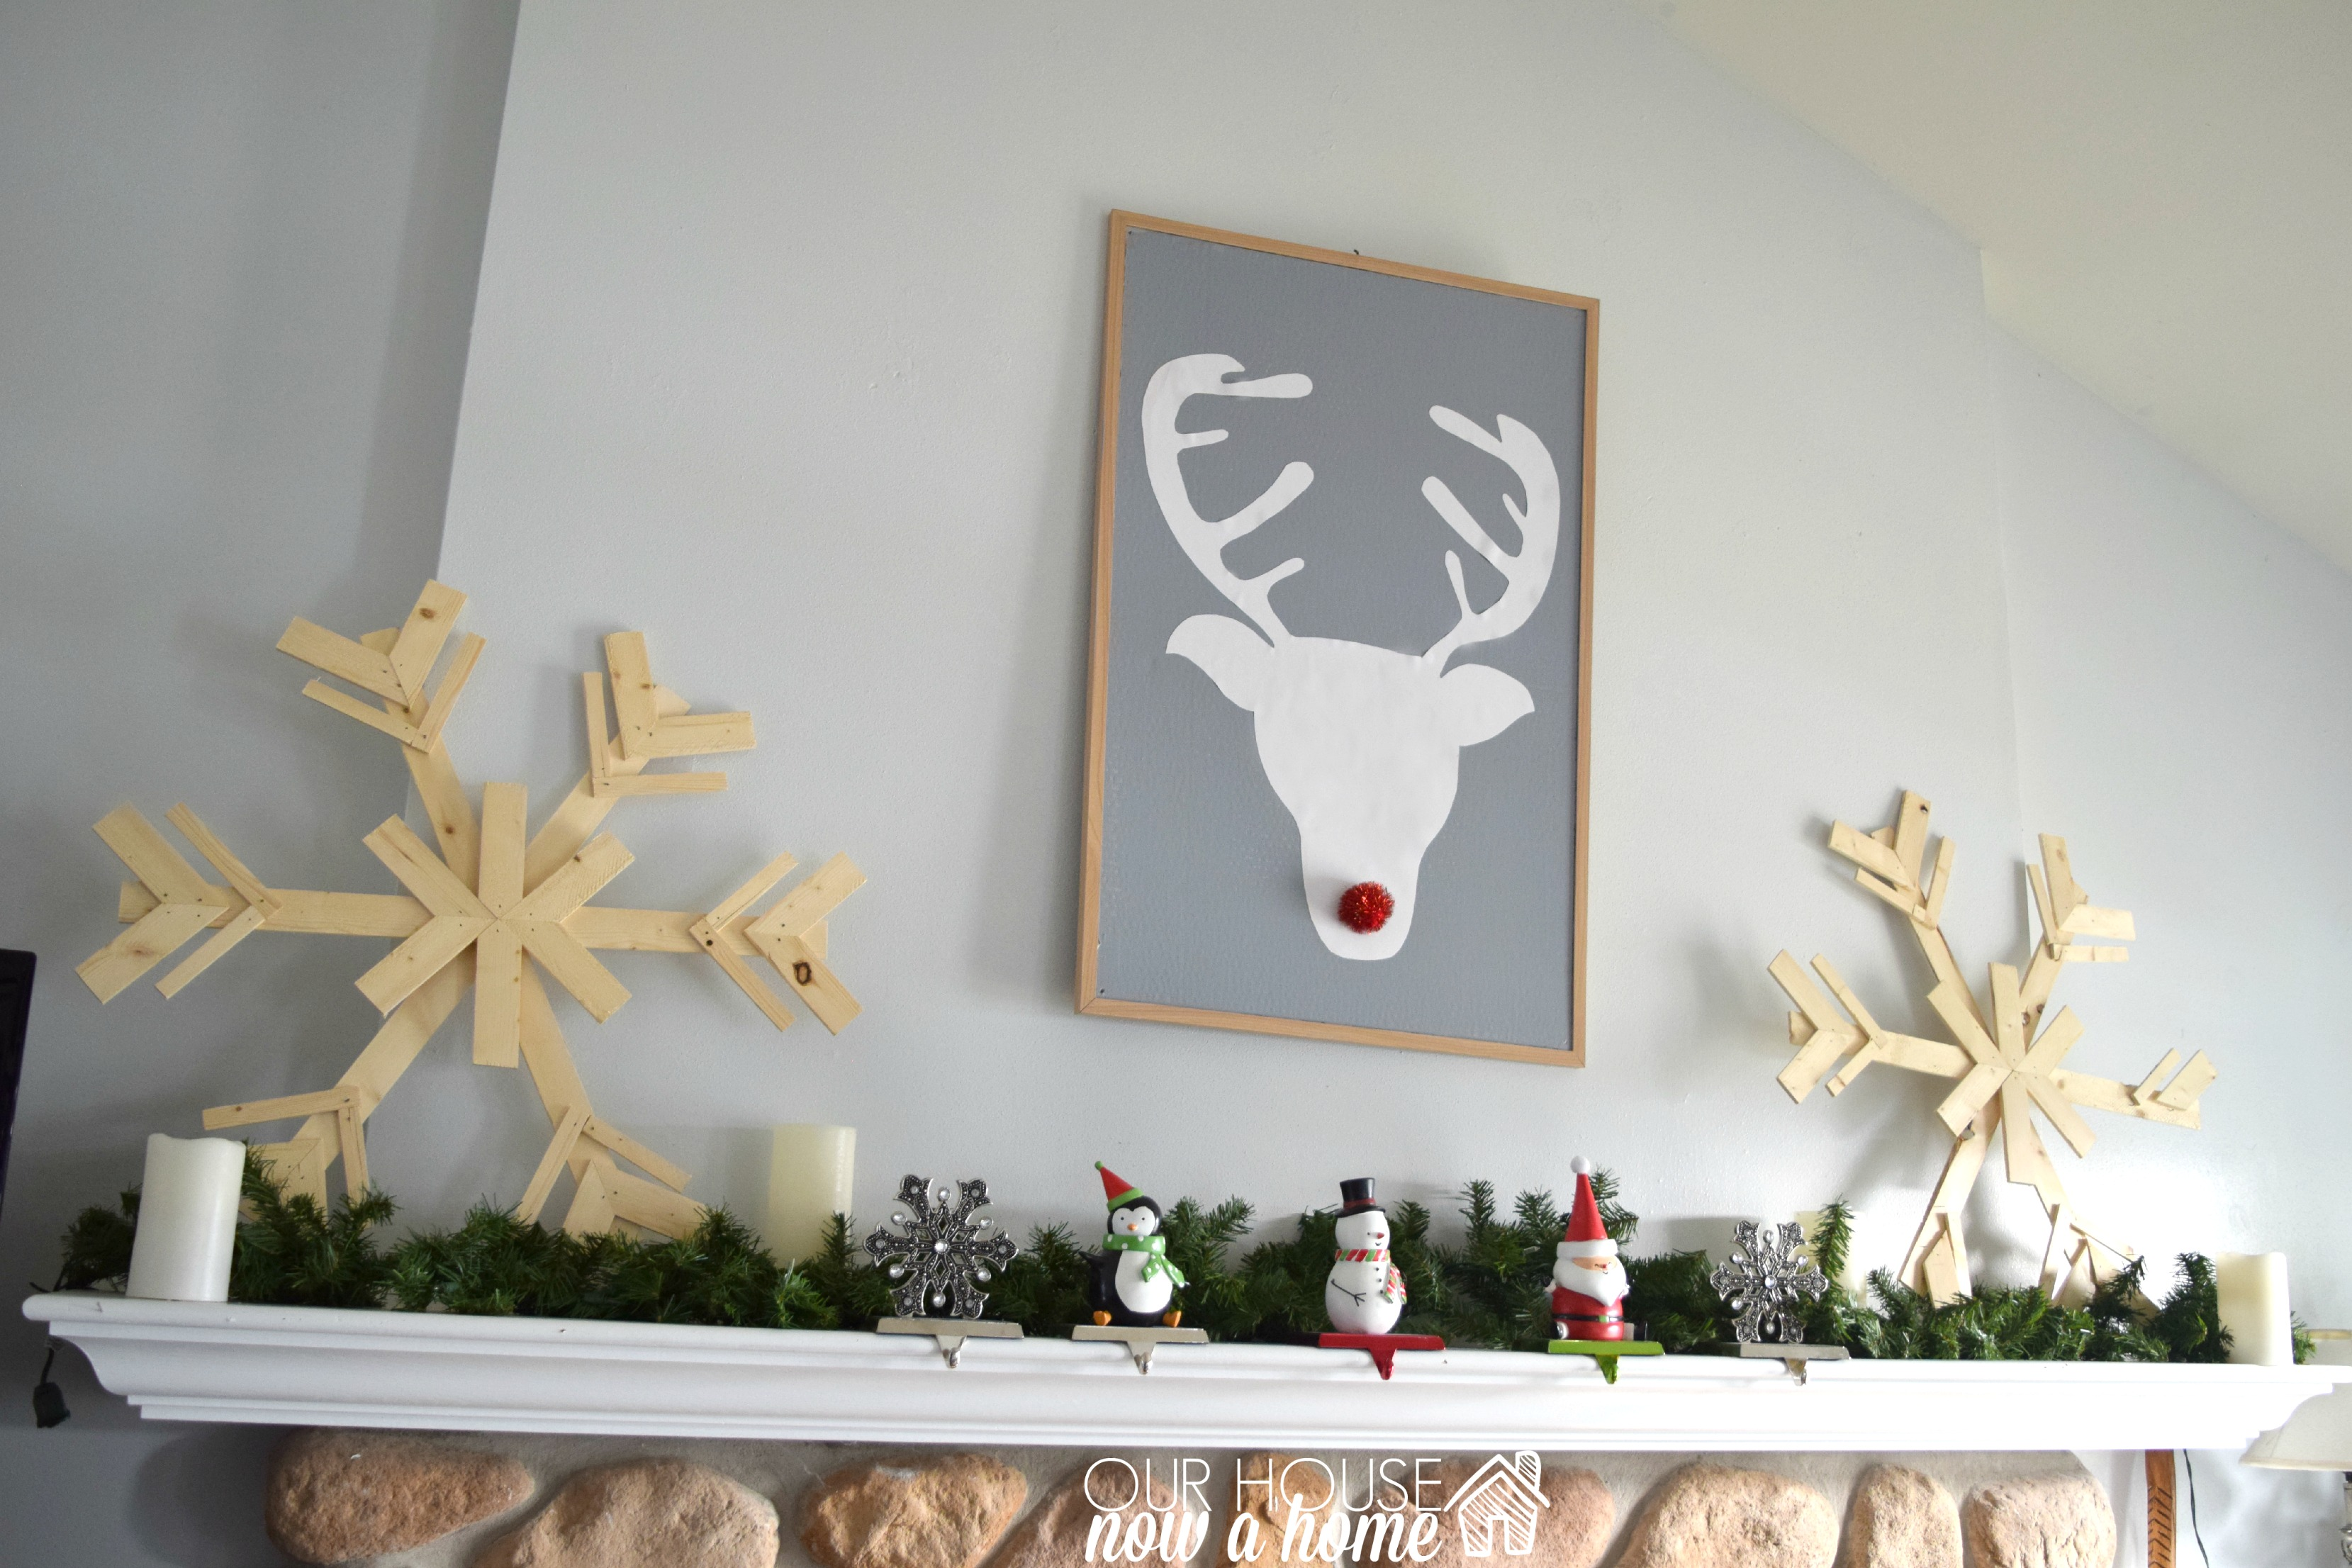 Holiday home tour hope- sharing my living room